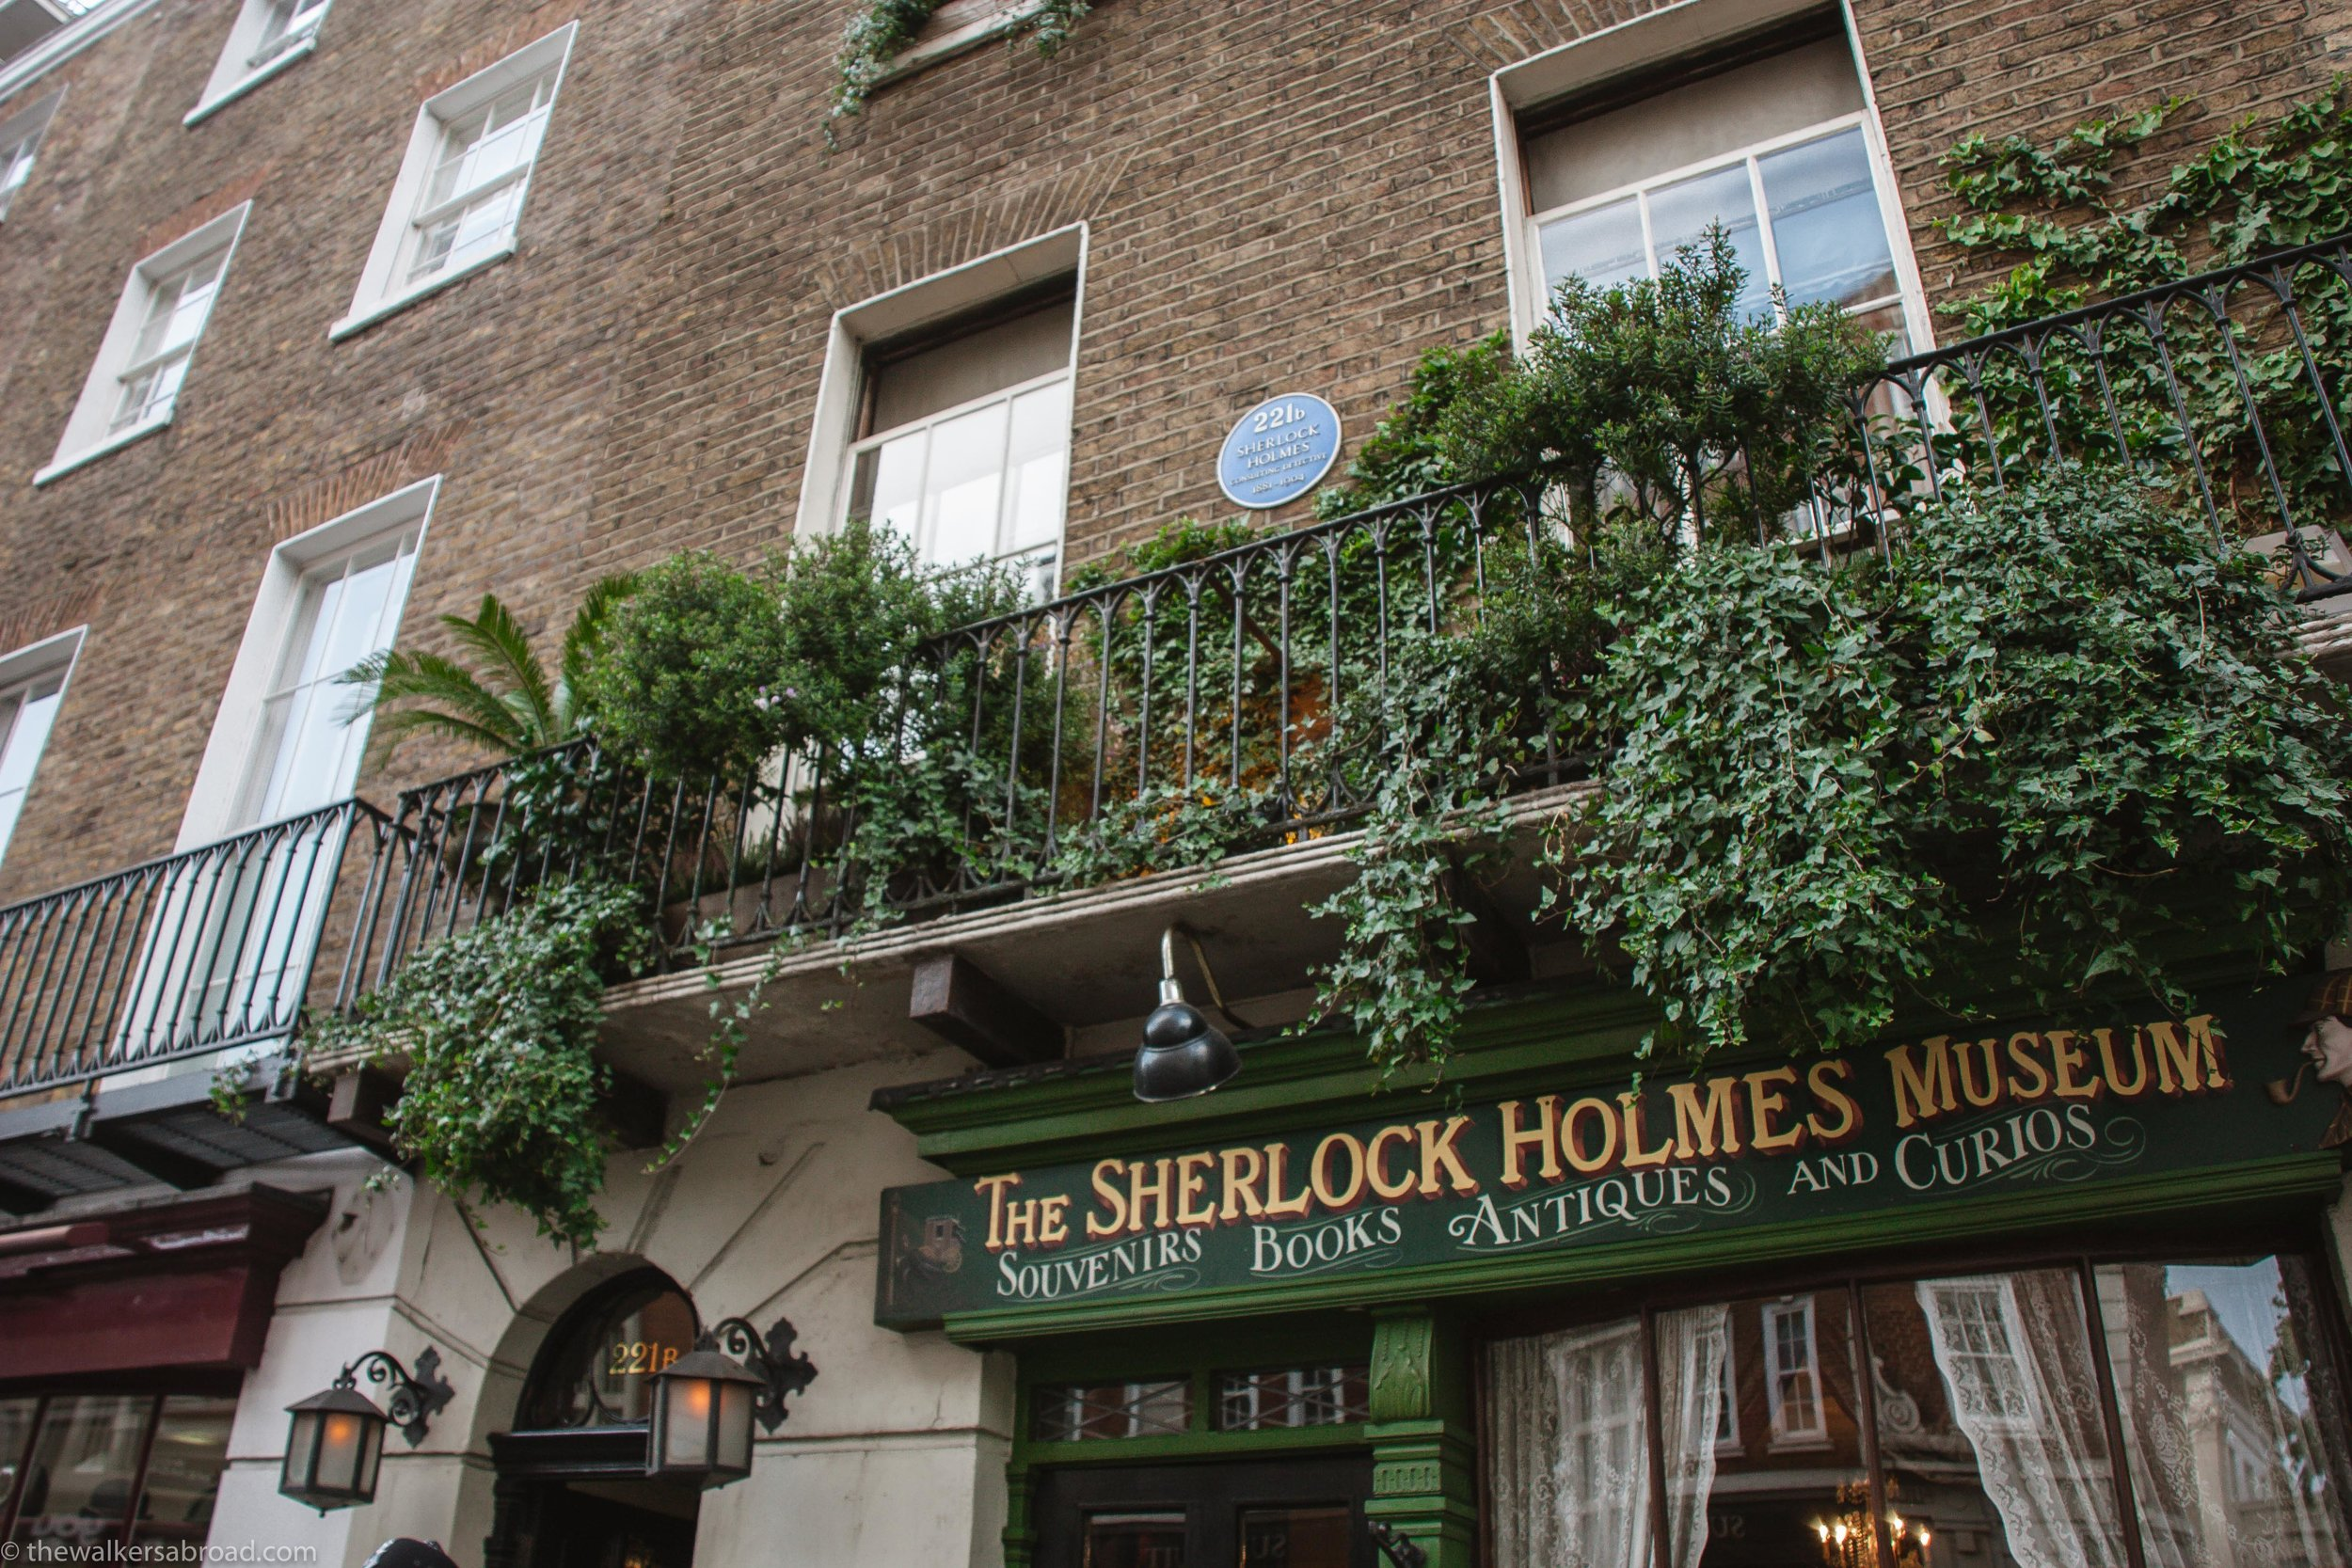 We stopped by 221B on our way to our hotel. I didn't get the chance to go back in there, but it was really very fun to just walk by.